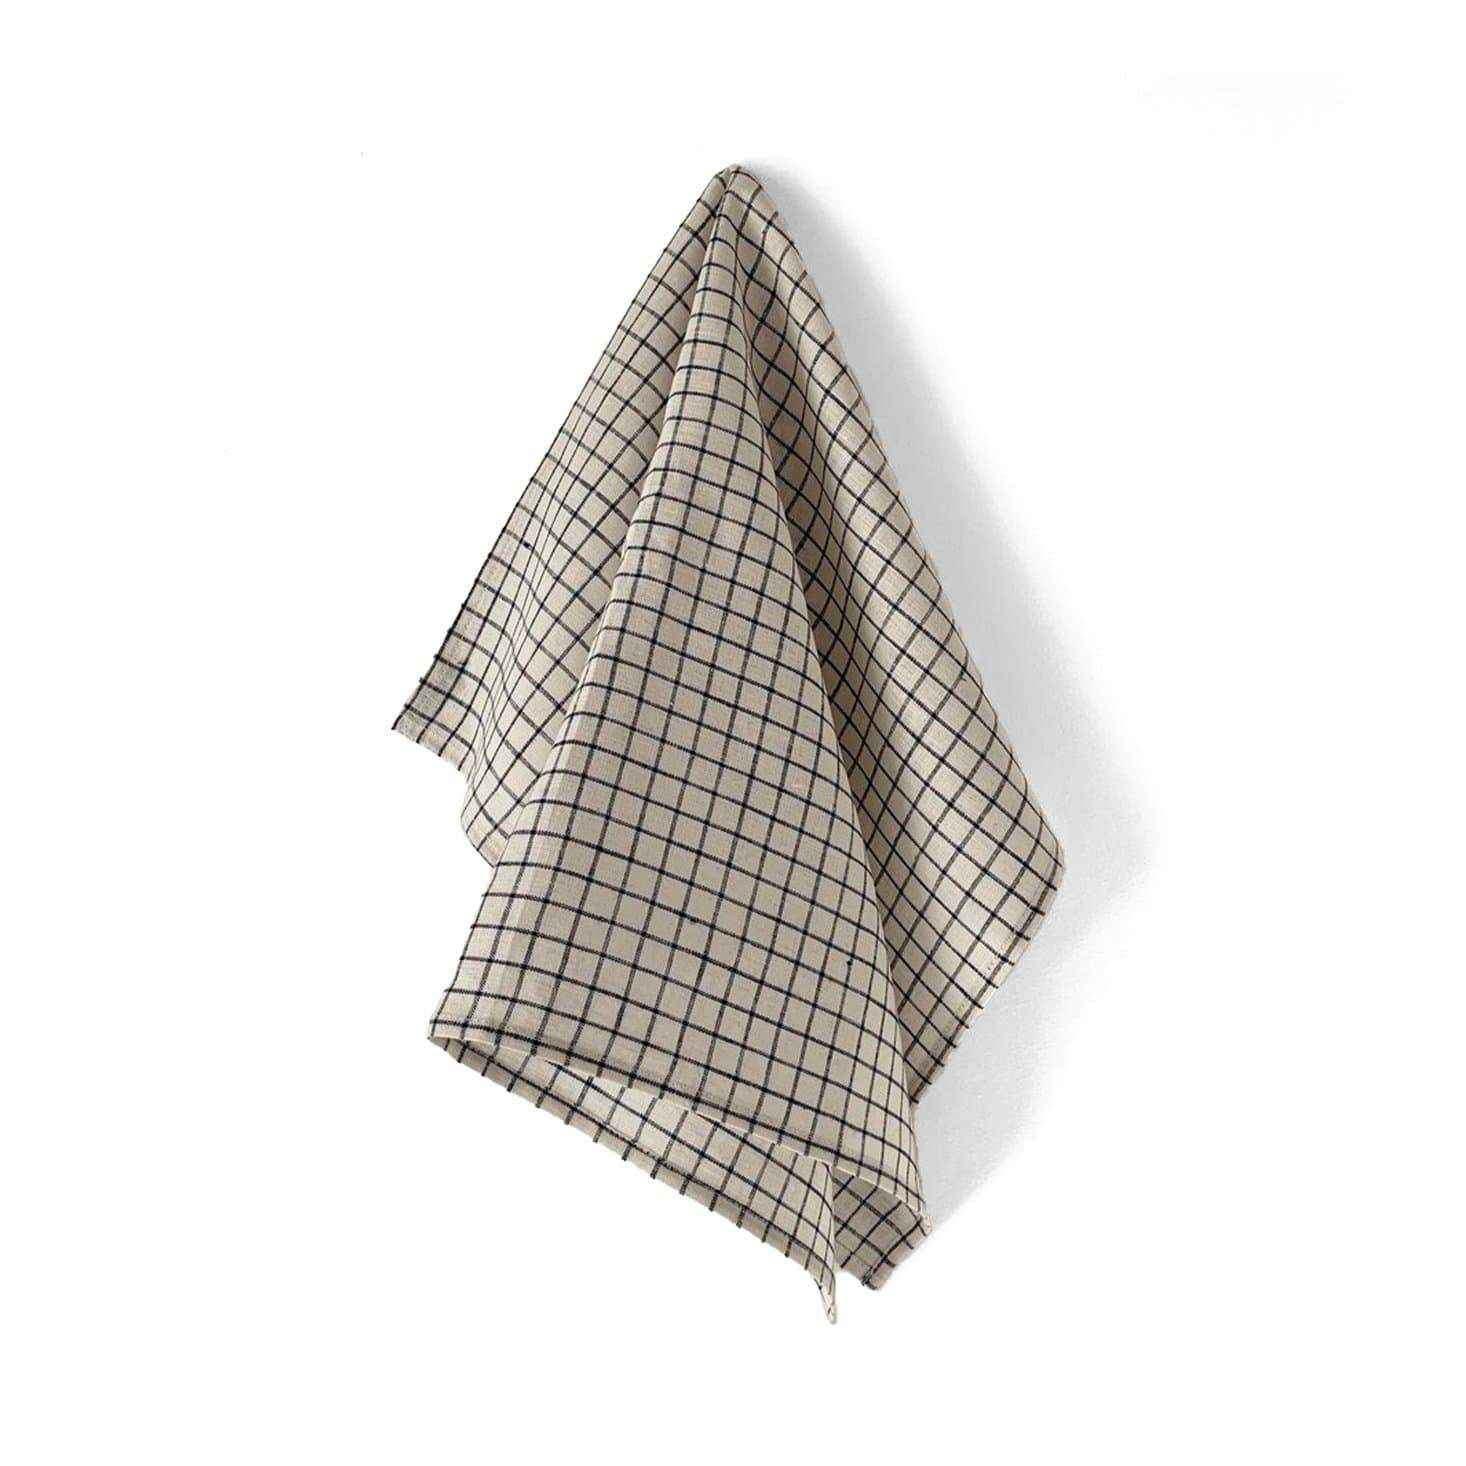 Fog Linen Work Tea Towel - Ecru + Black Fine Check